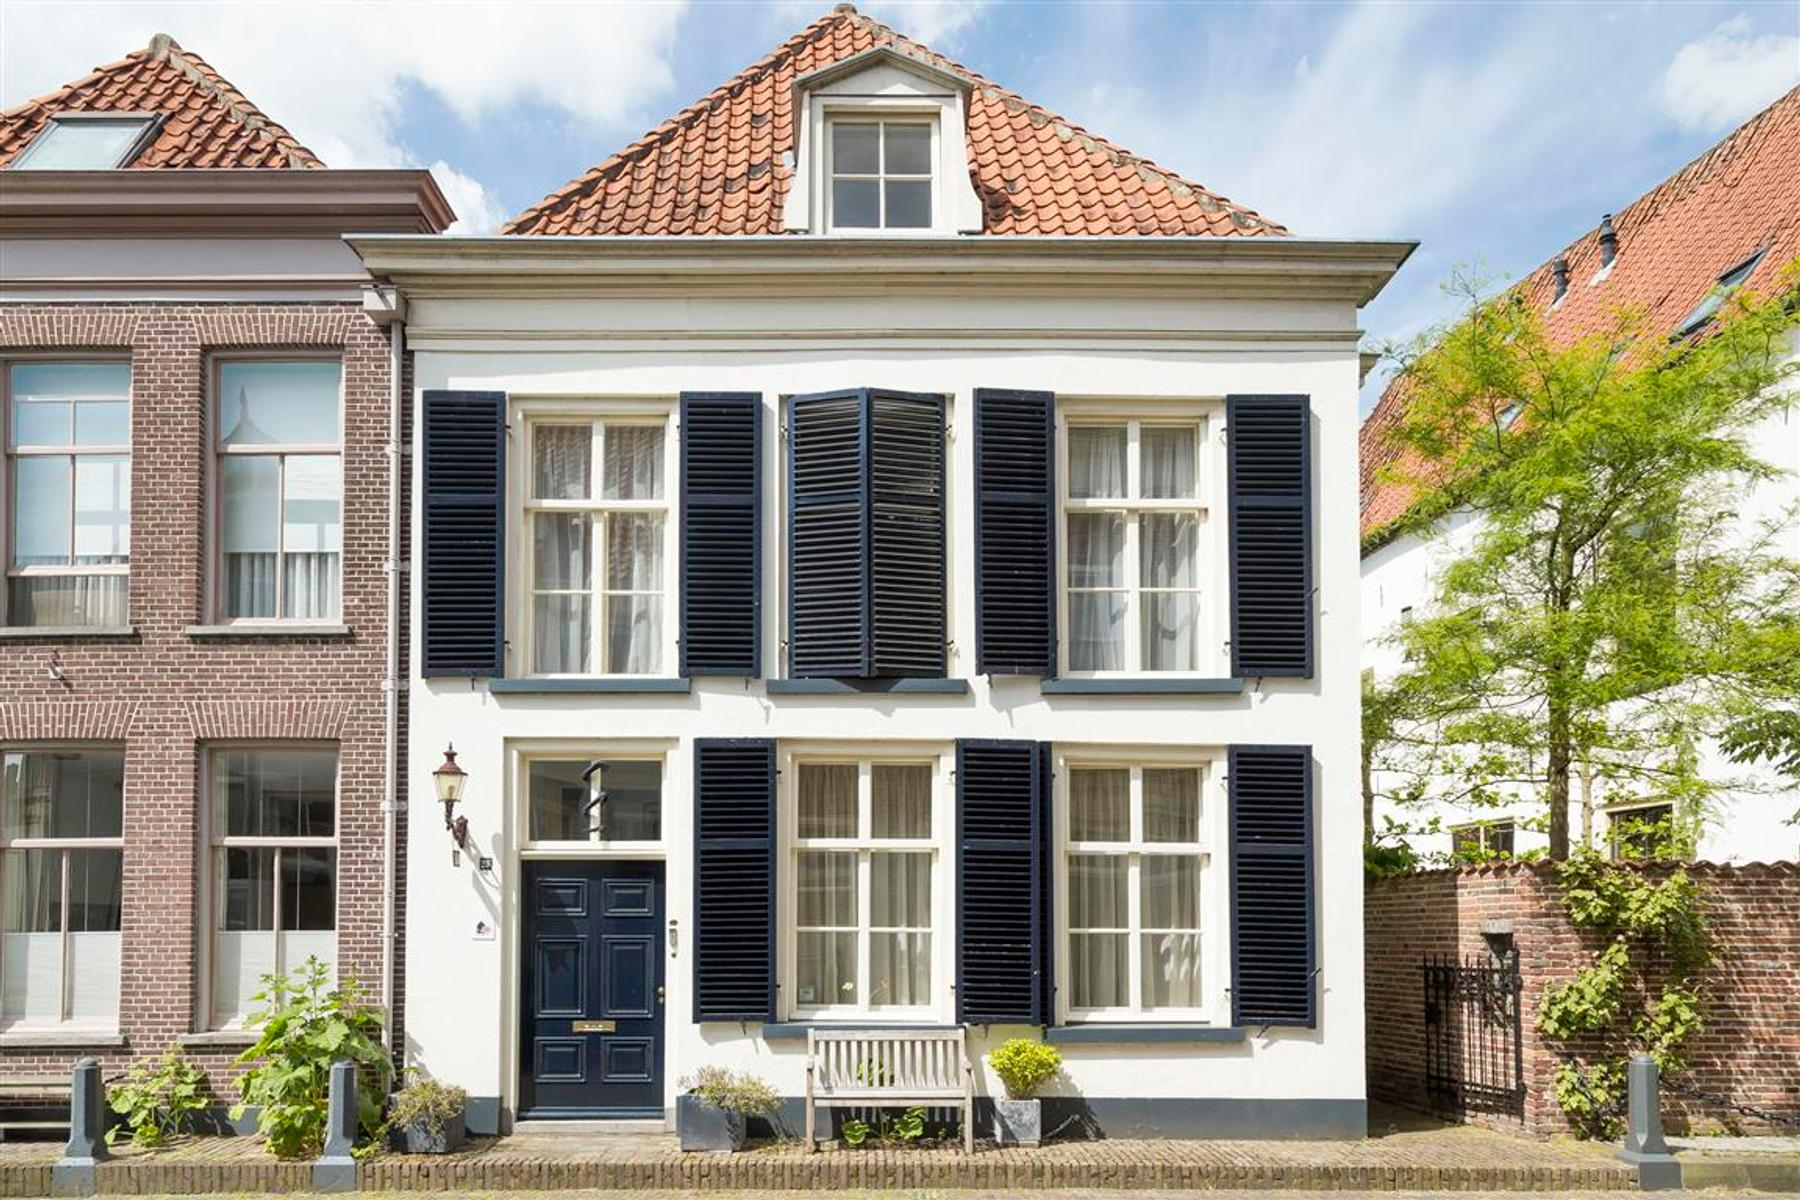 Veerpoortstraat 24 26 in Doesburg 6981 BN